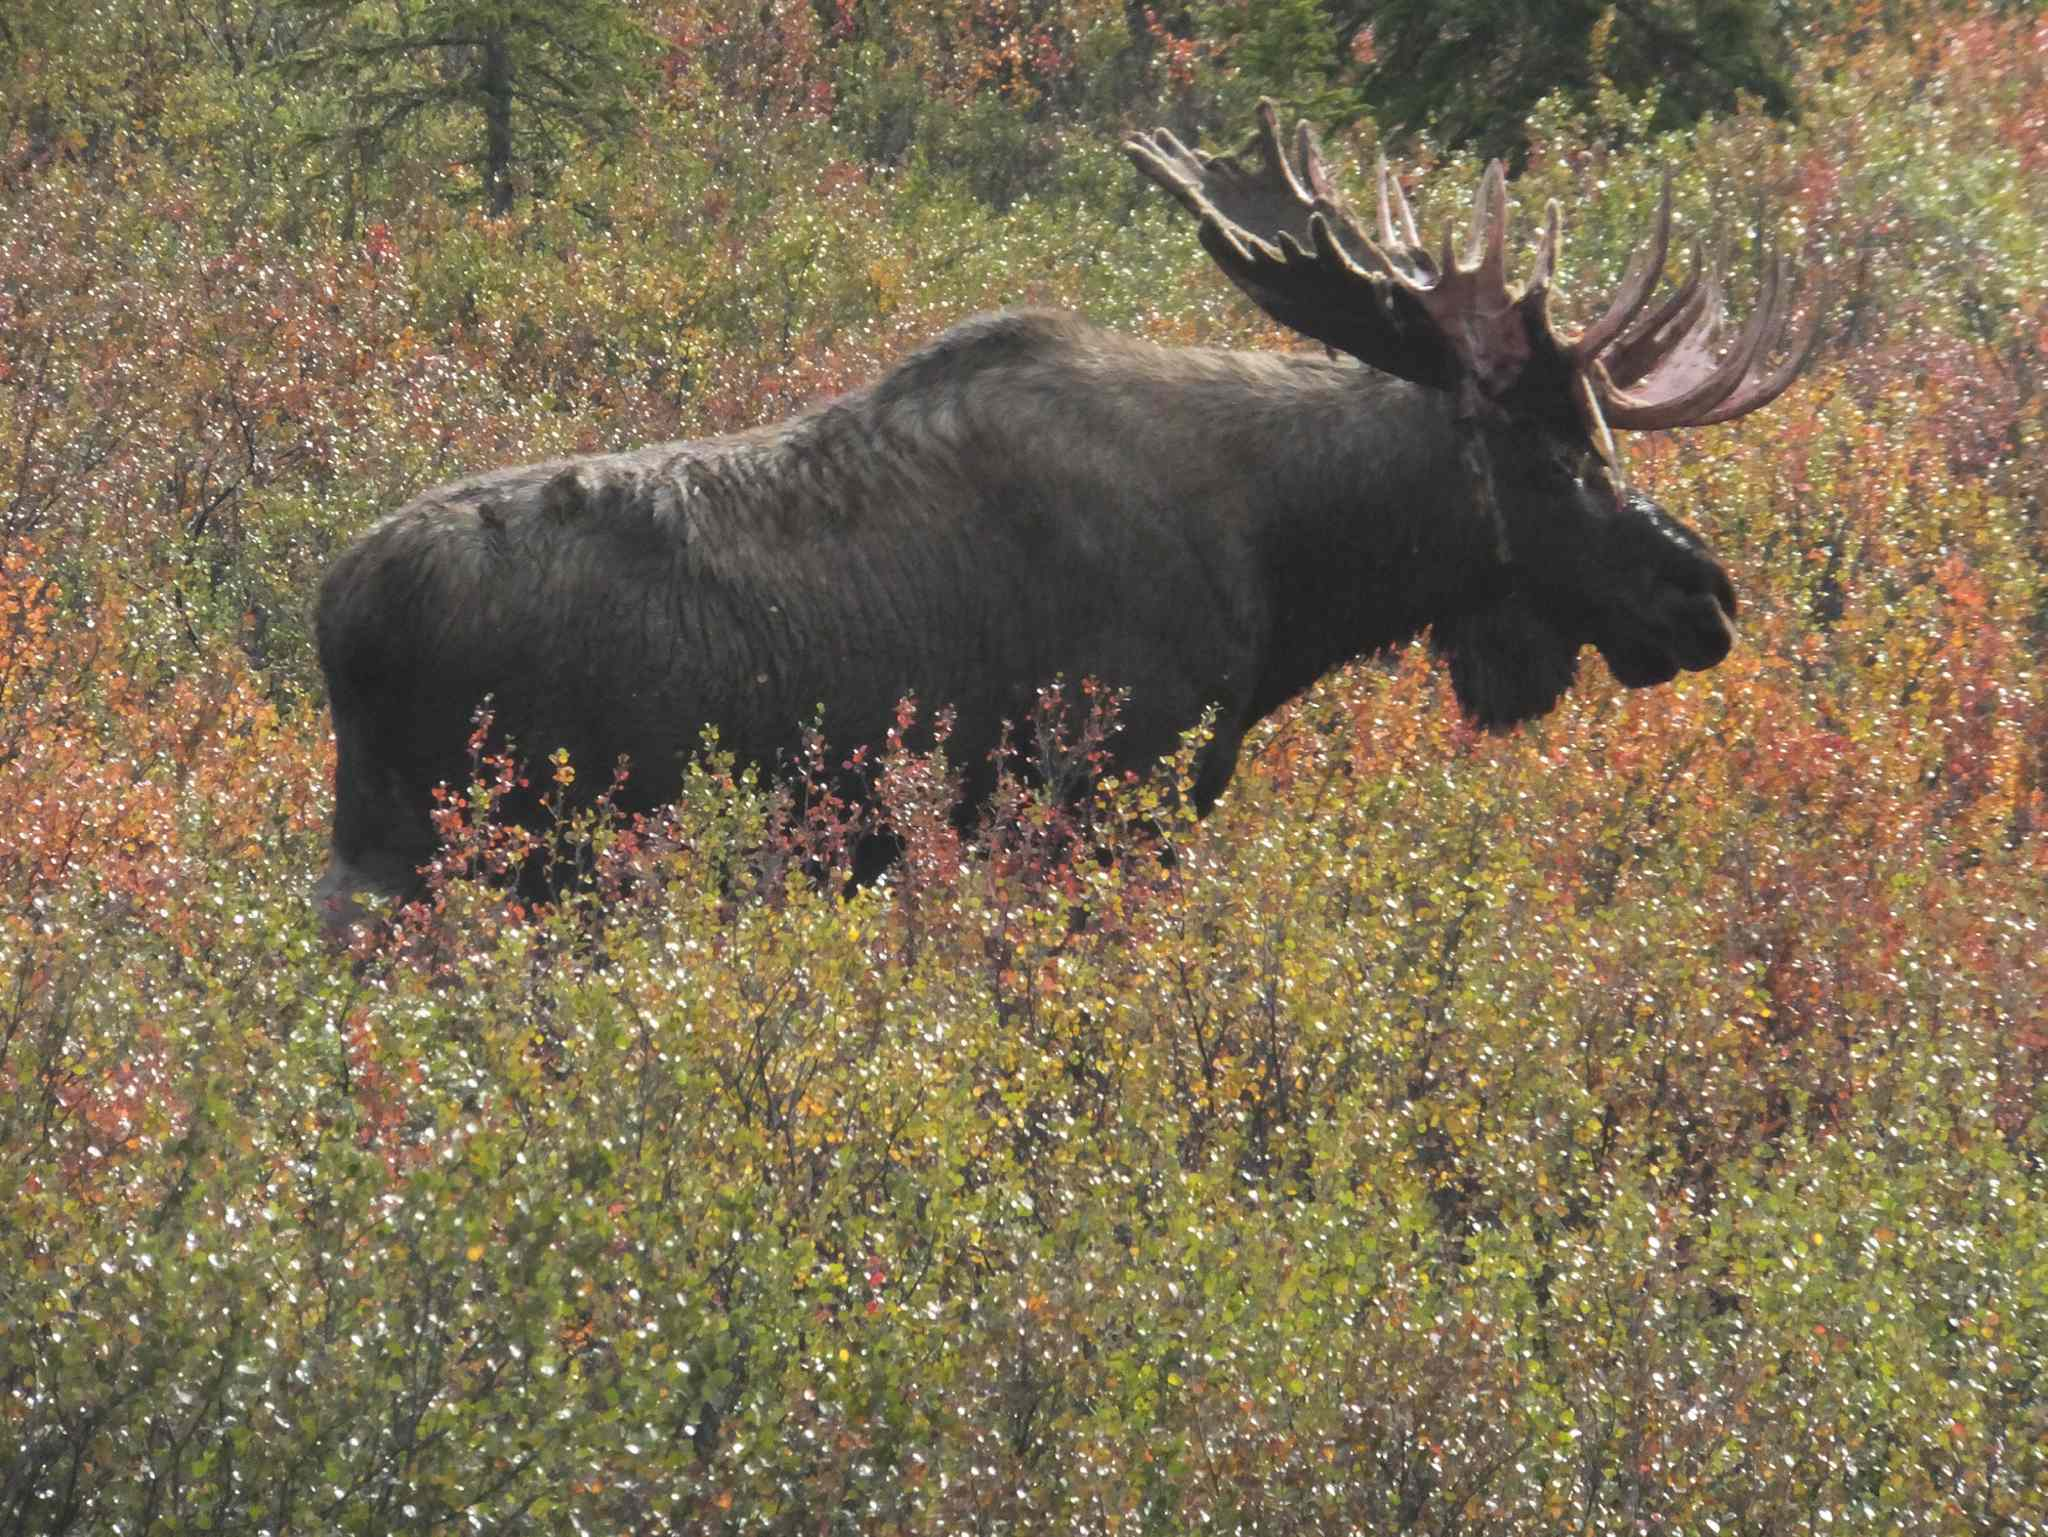 Moose populations have been declining in some areas of Manitoba, forcing the province to ban moose hunting in several regions.